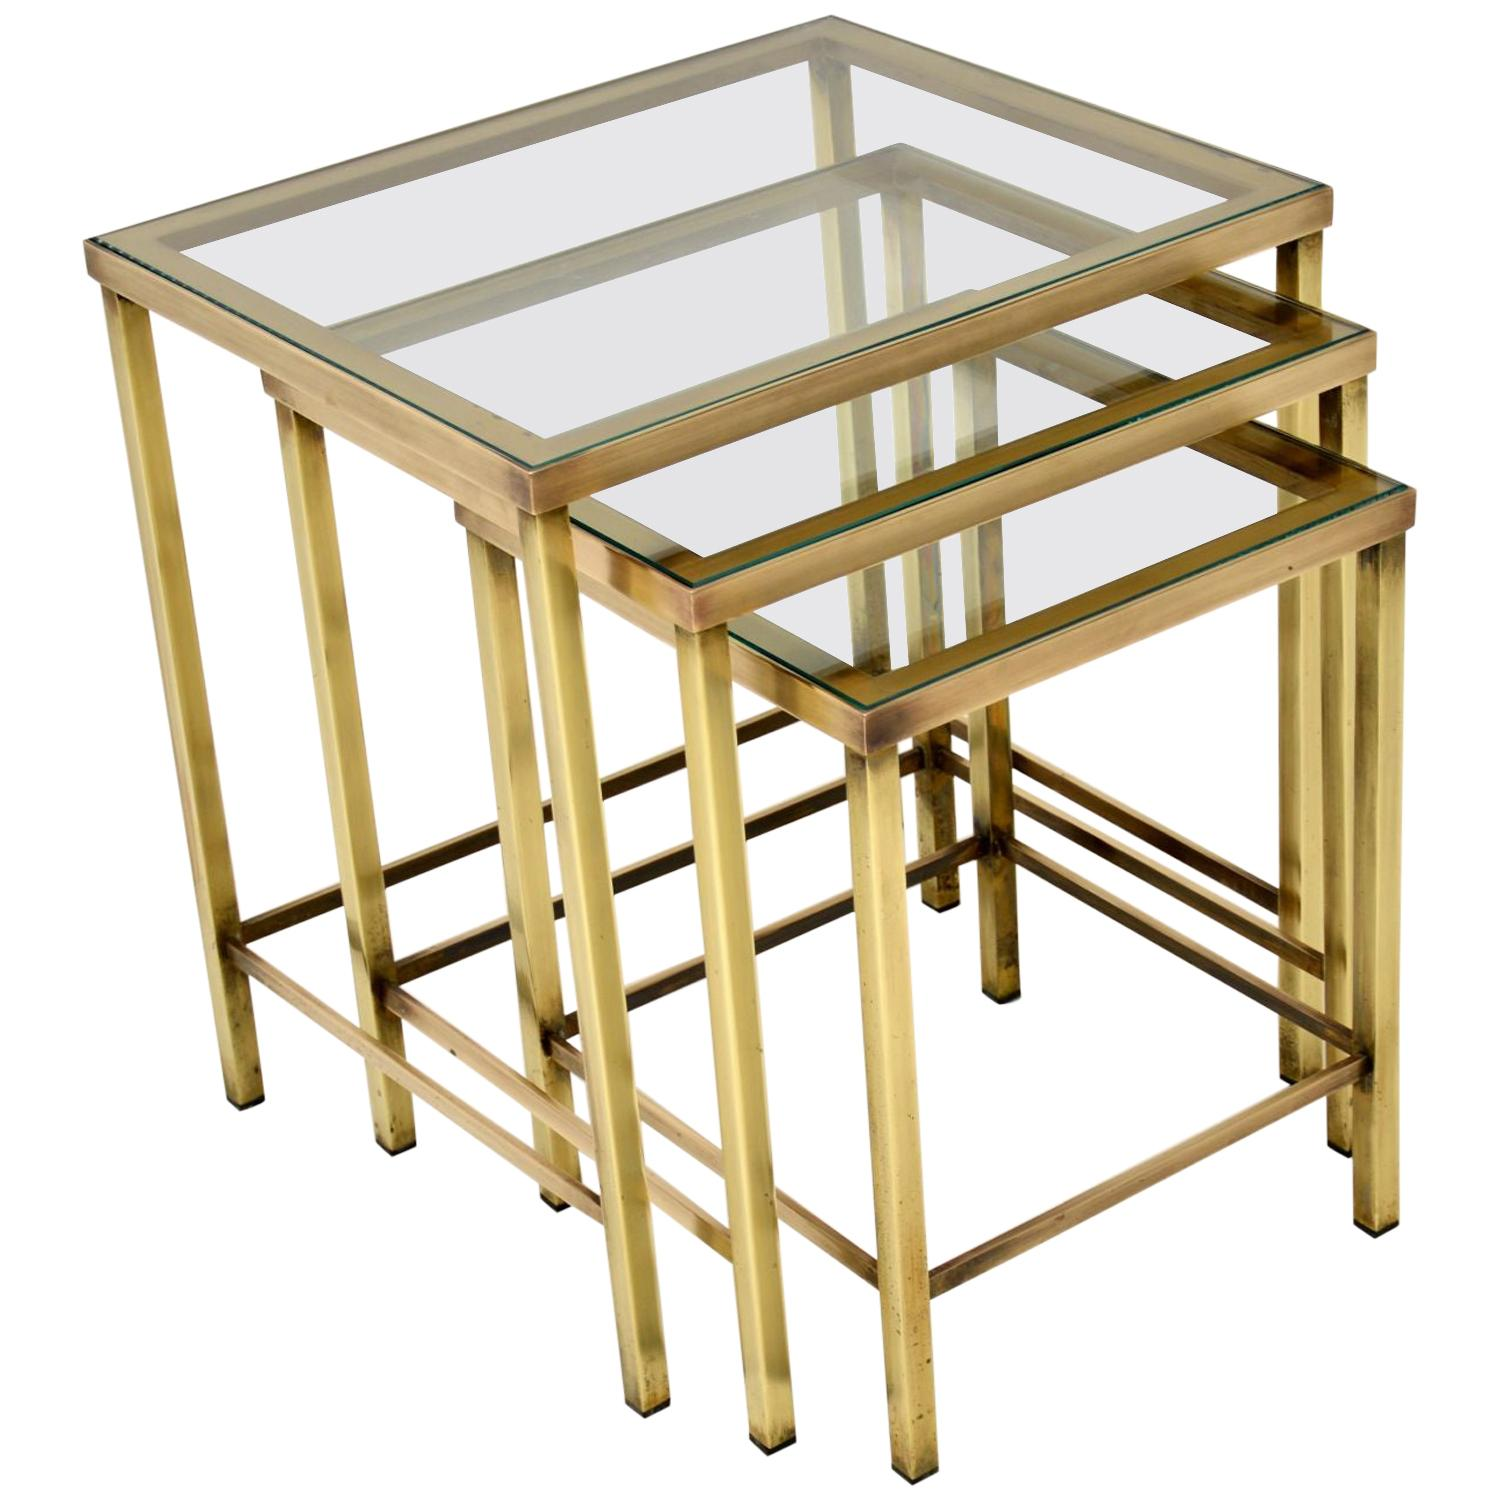 1960's Vintage Brass & Glass Nest of Tables